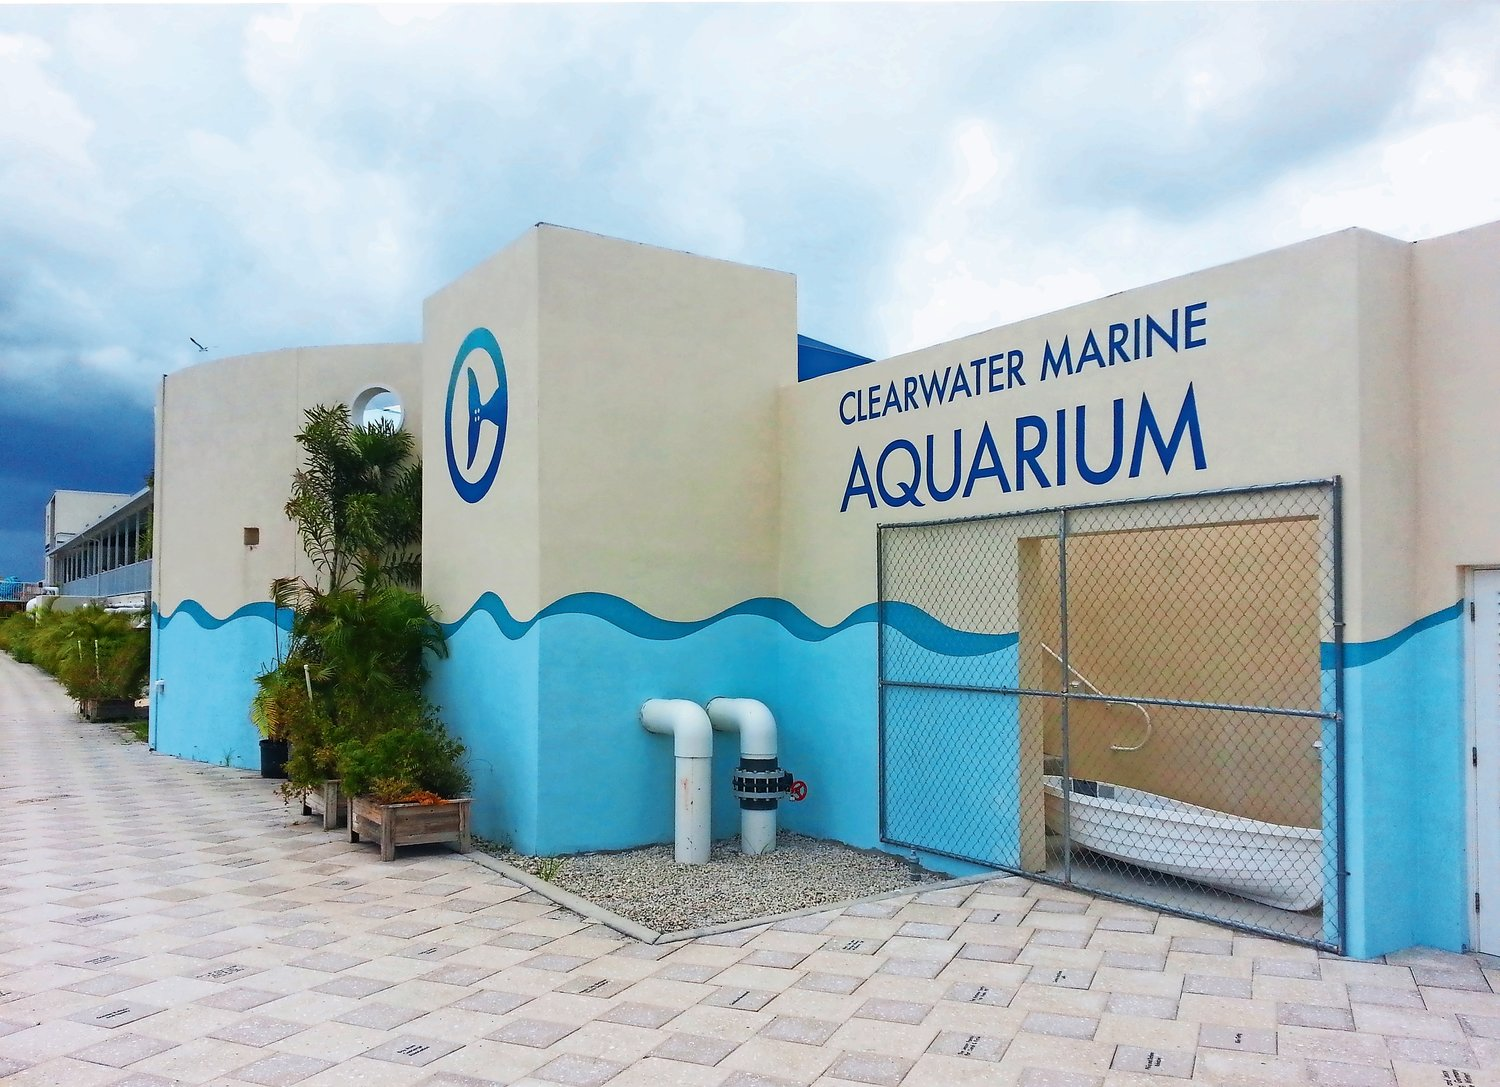 The Salk students researched different aquariums to donate to, including Clearwater.